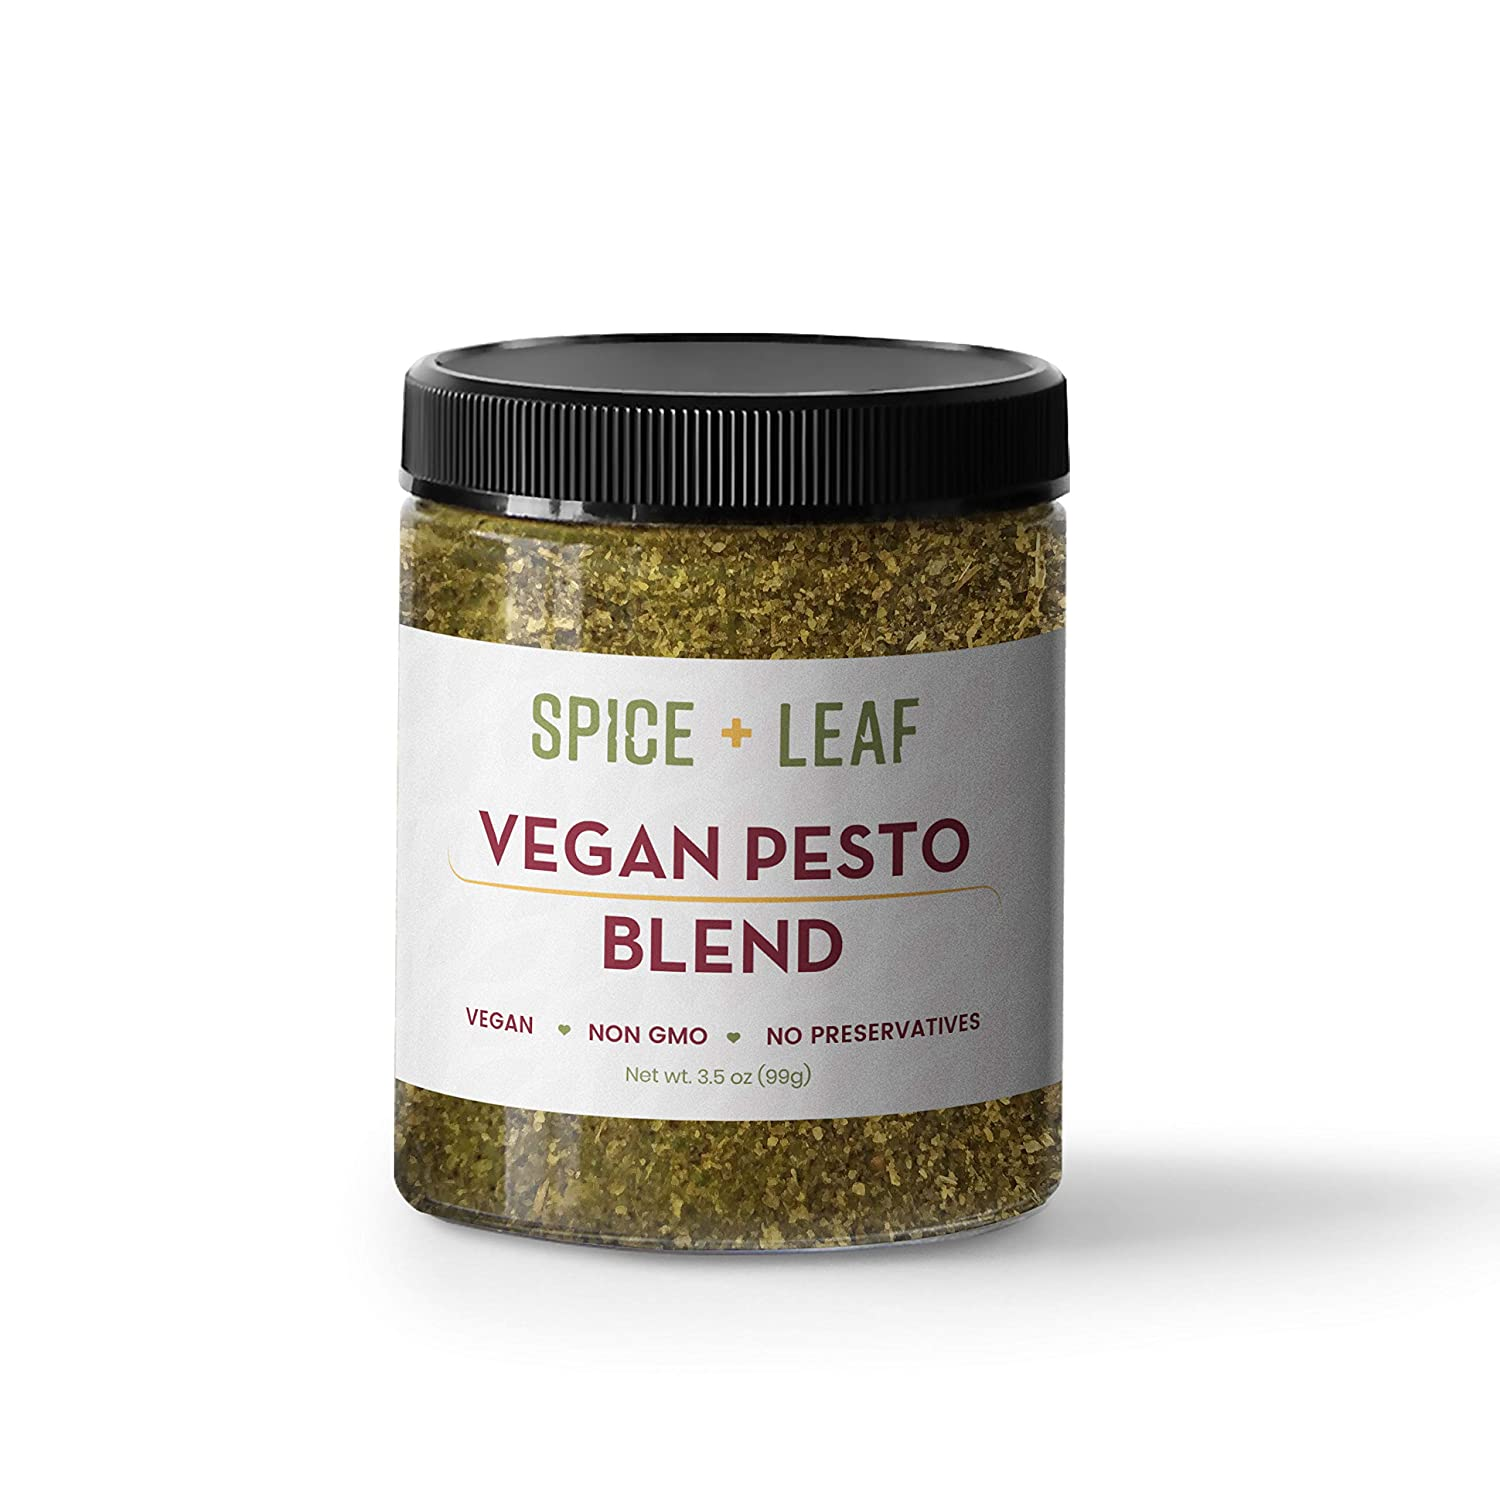 Premium Vegan Pesto Blend by Spice + Leaf - Vegan Non GMO and No Preservatives Spice Blend for Pasta, Chicken, Fish, Seafood, and Vegetables, Dairy Free and Salt Free